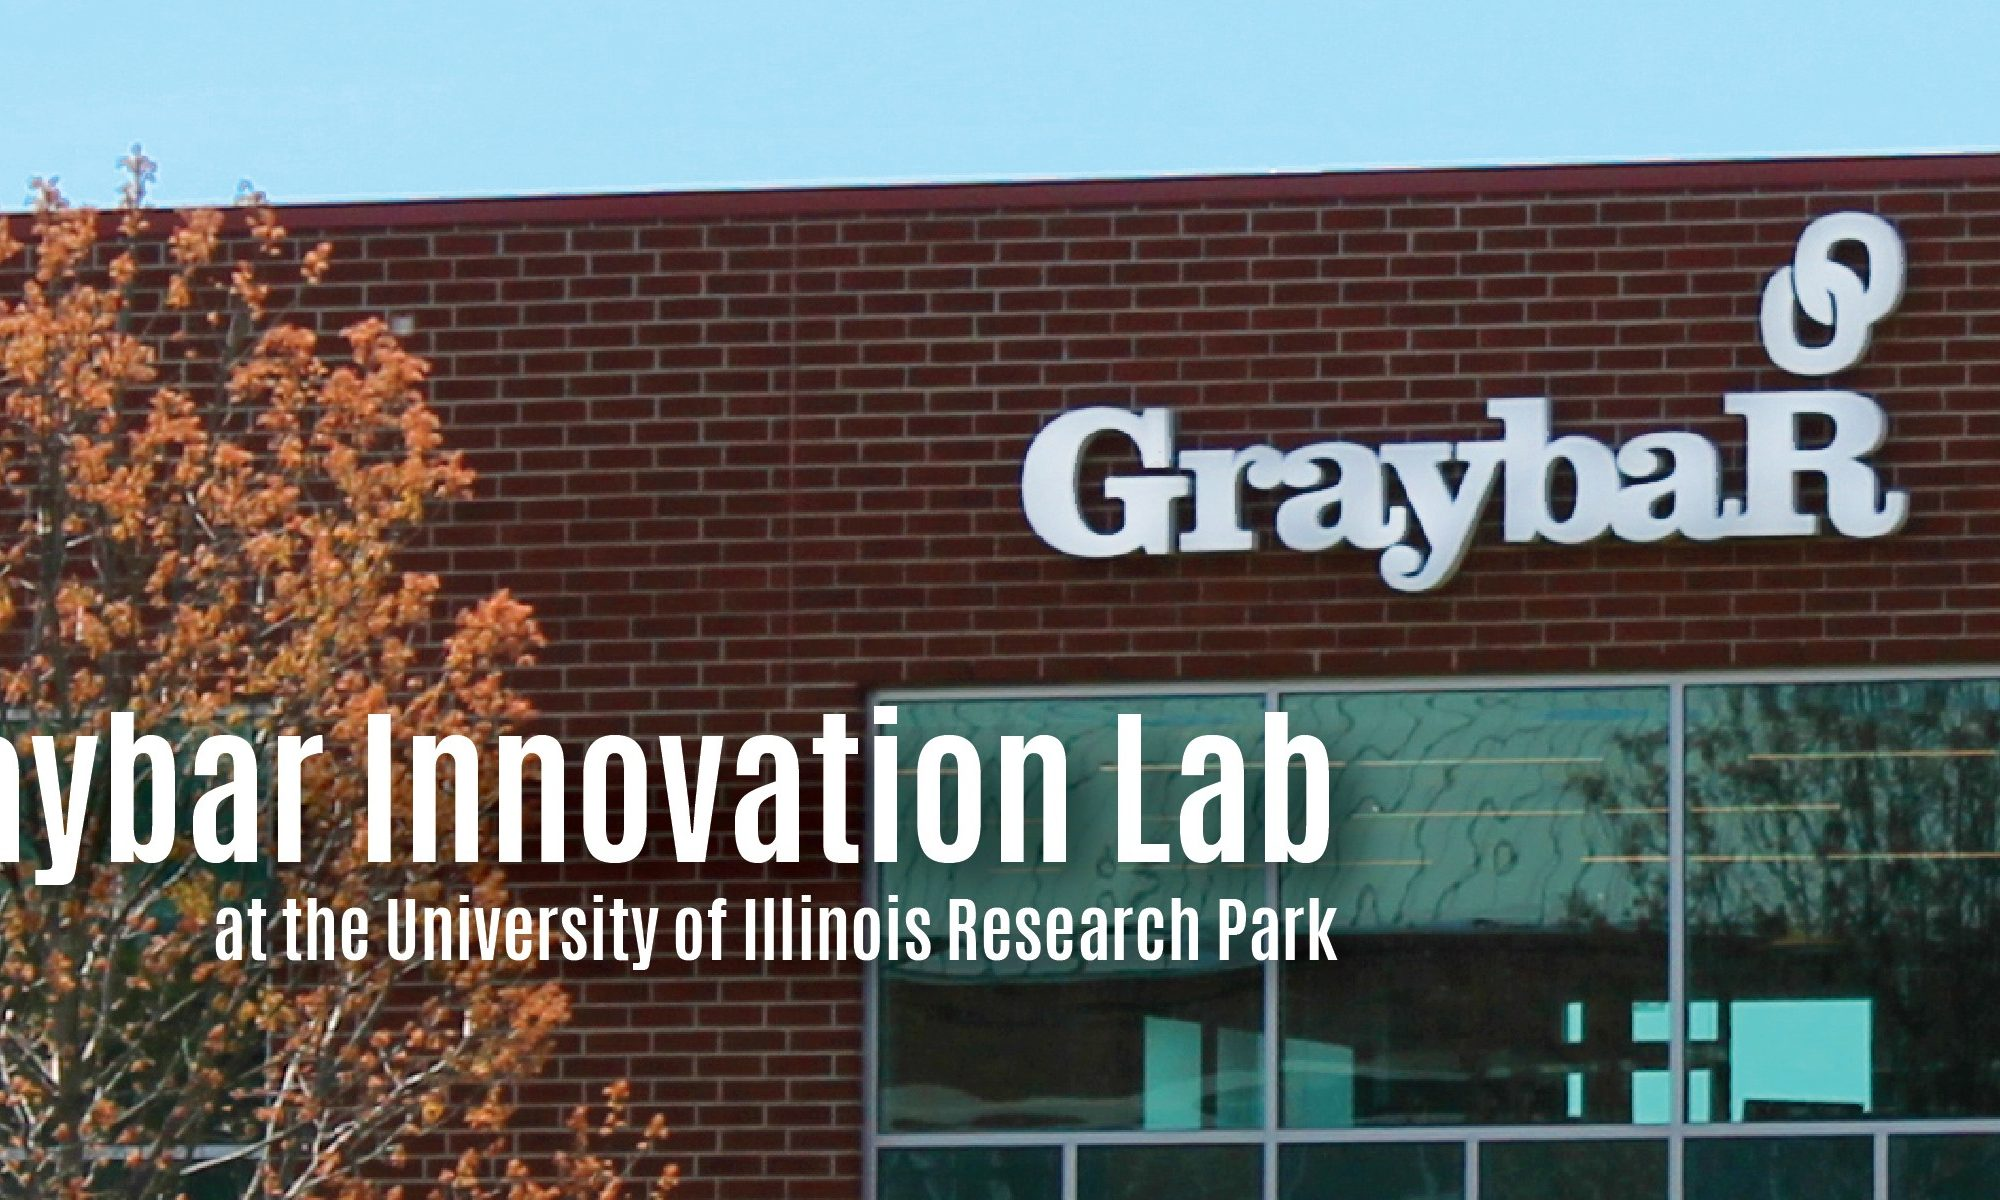 Graybar Innovation Lab at Research Park